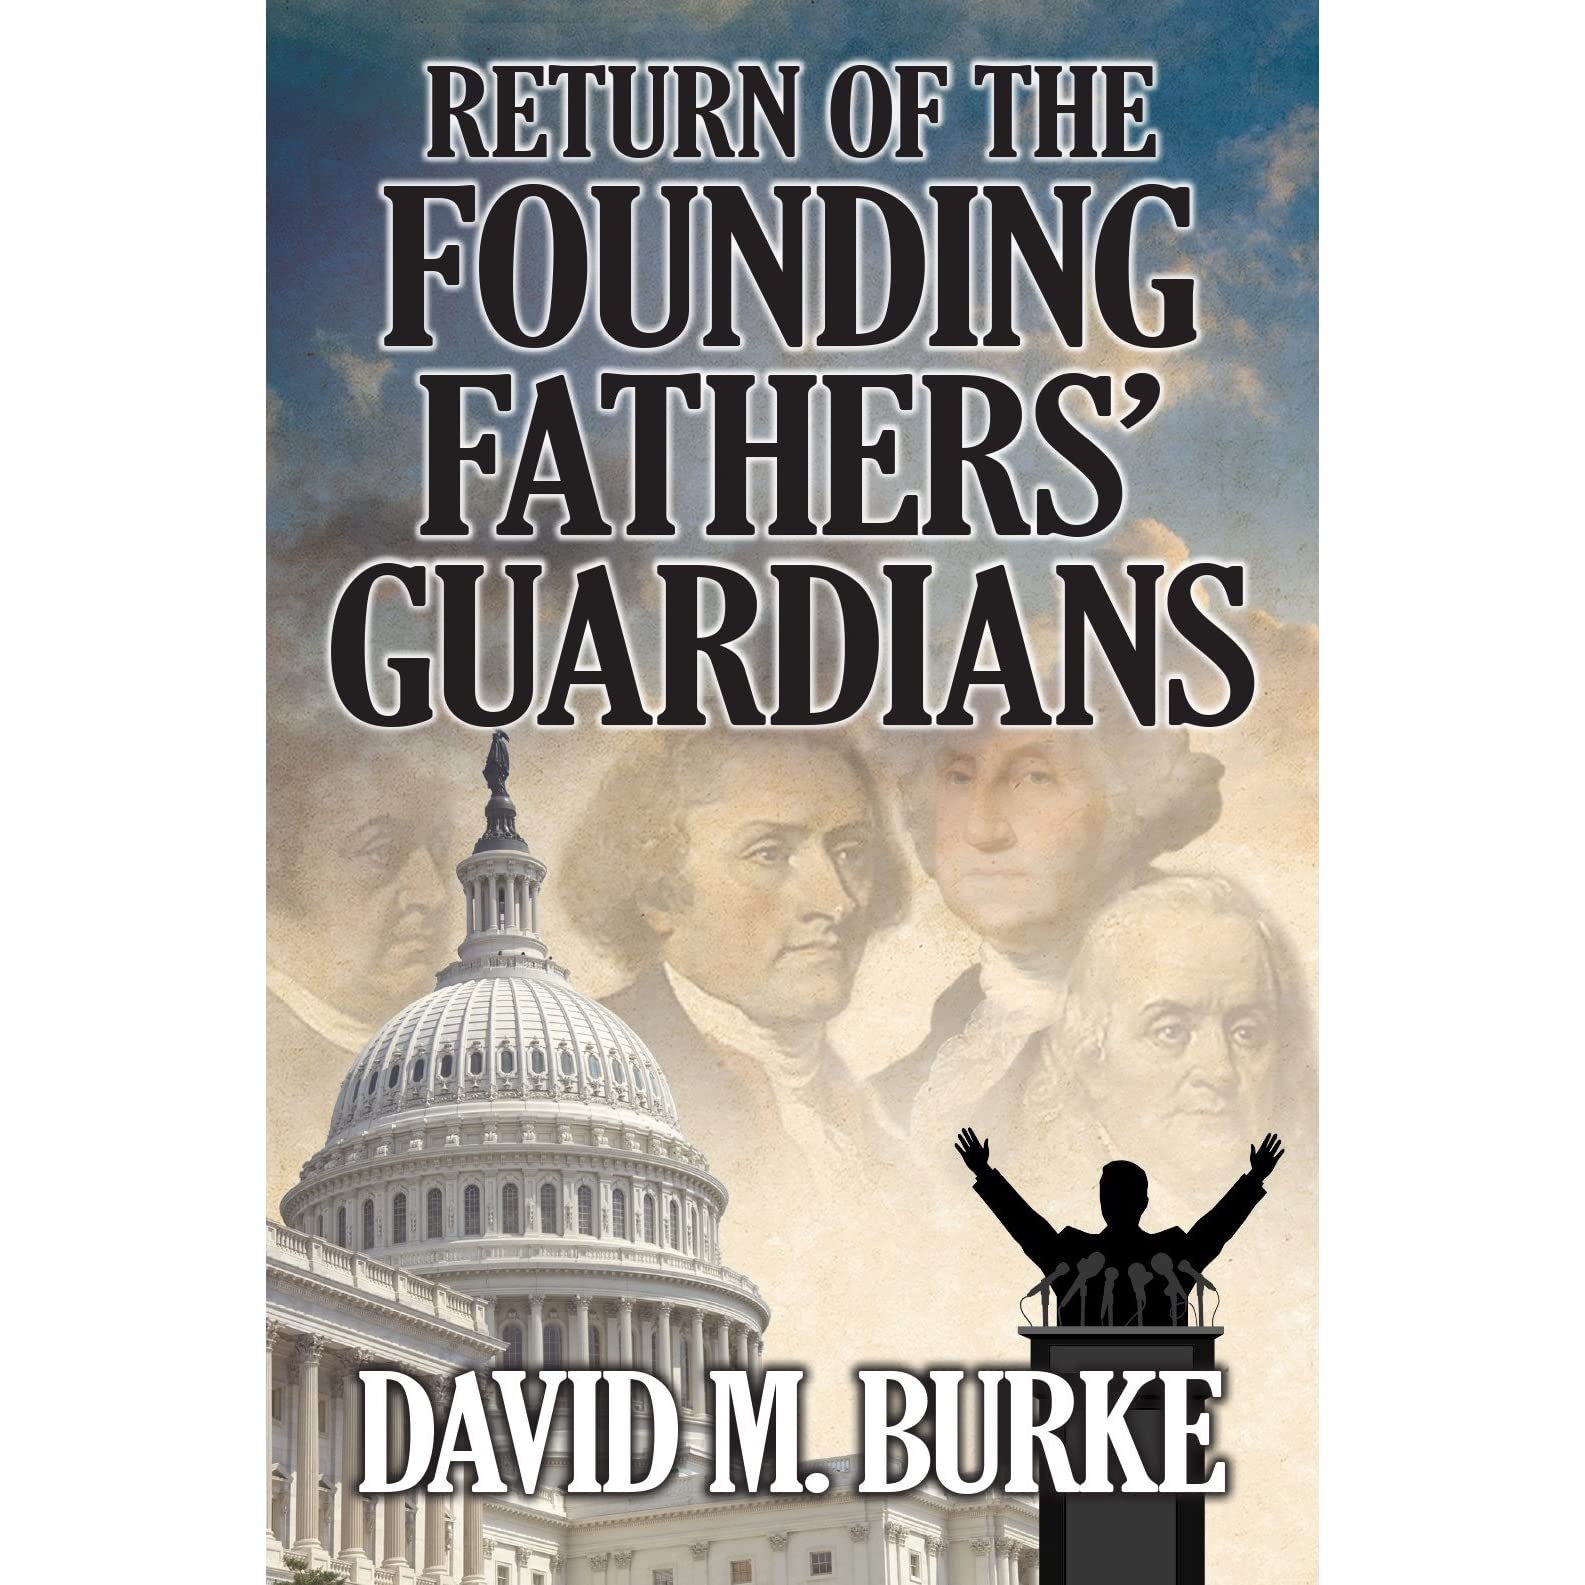 Return of the Founding Fathers\' Guardians by David M. Burke